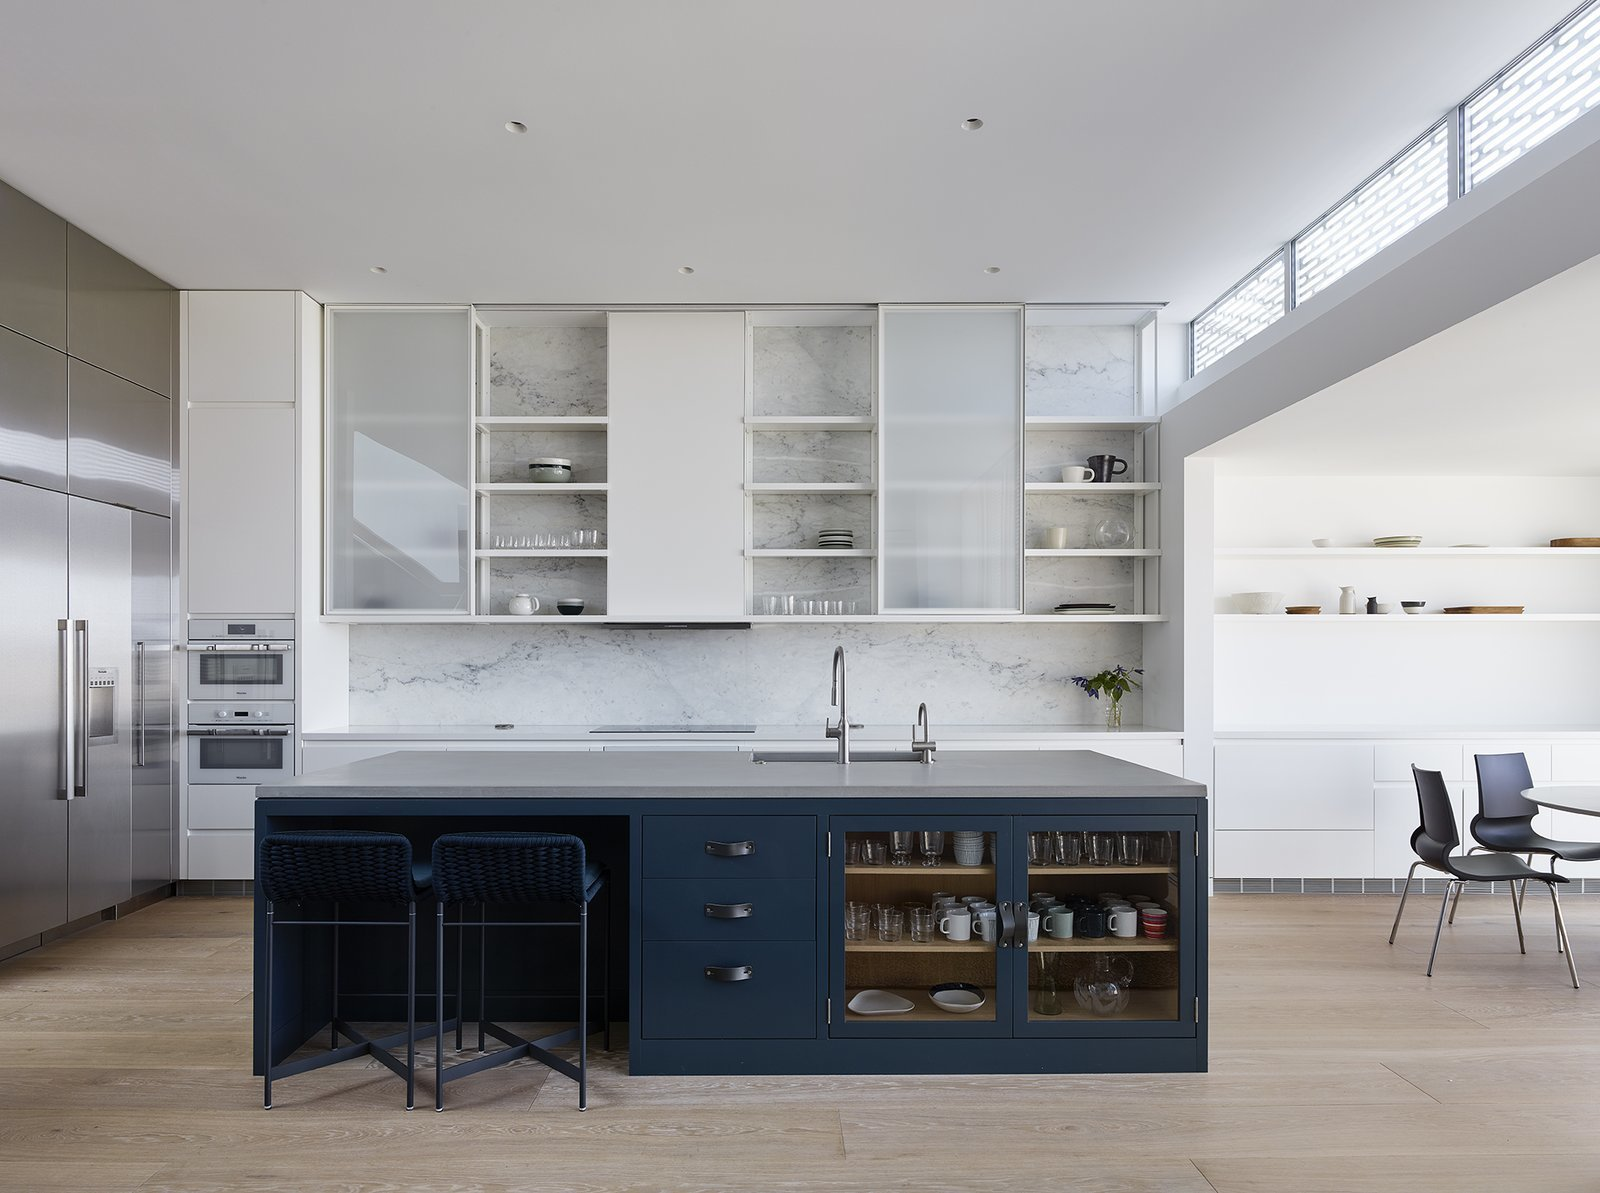 After: Alamo Square Residence indoor kitchen with blue island cabinetry and grey quartz countertops and white marble backsplash